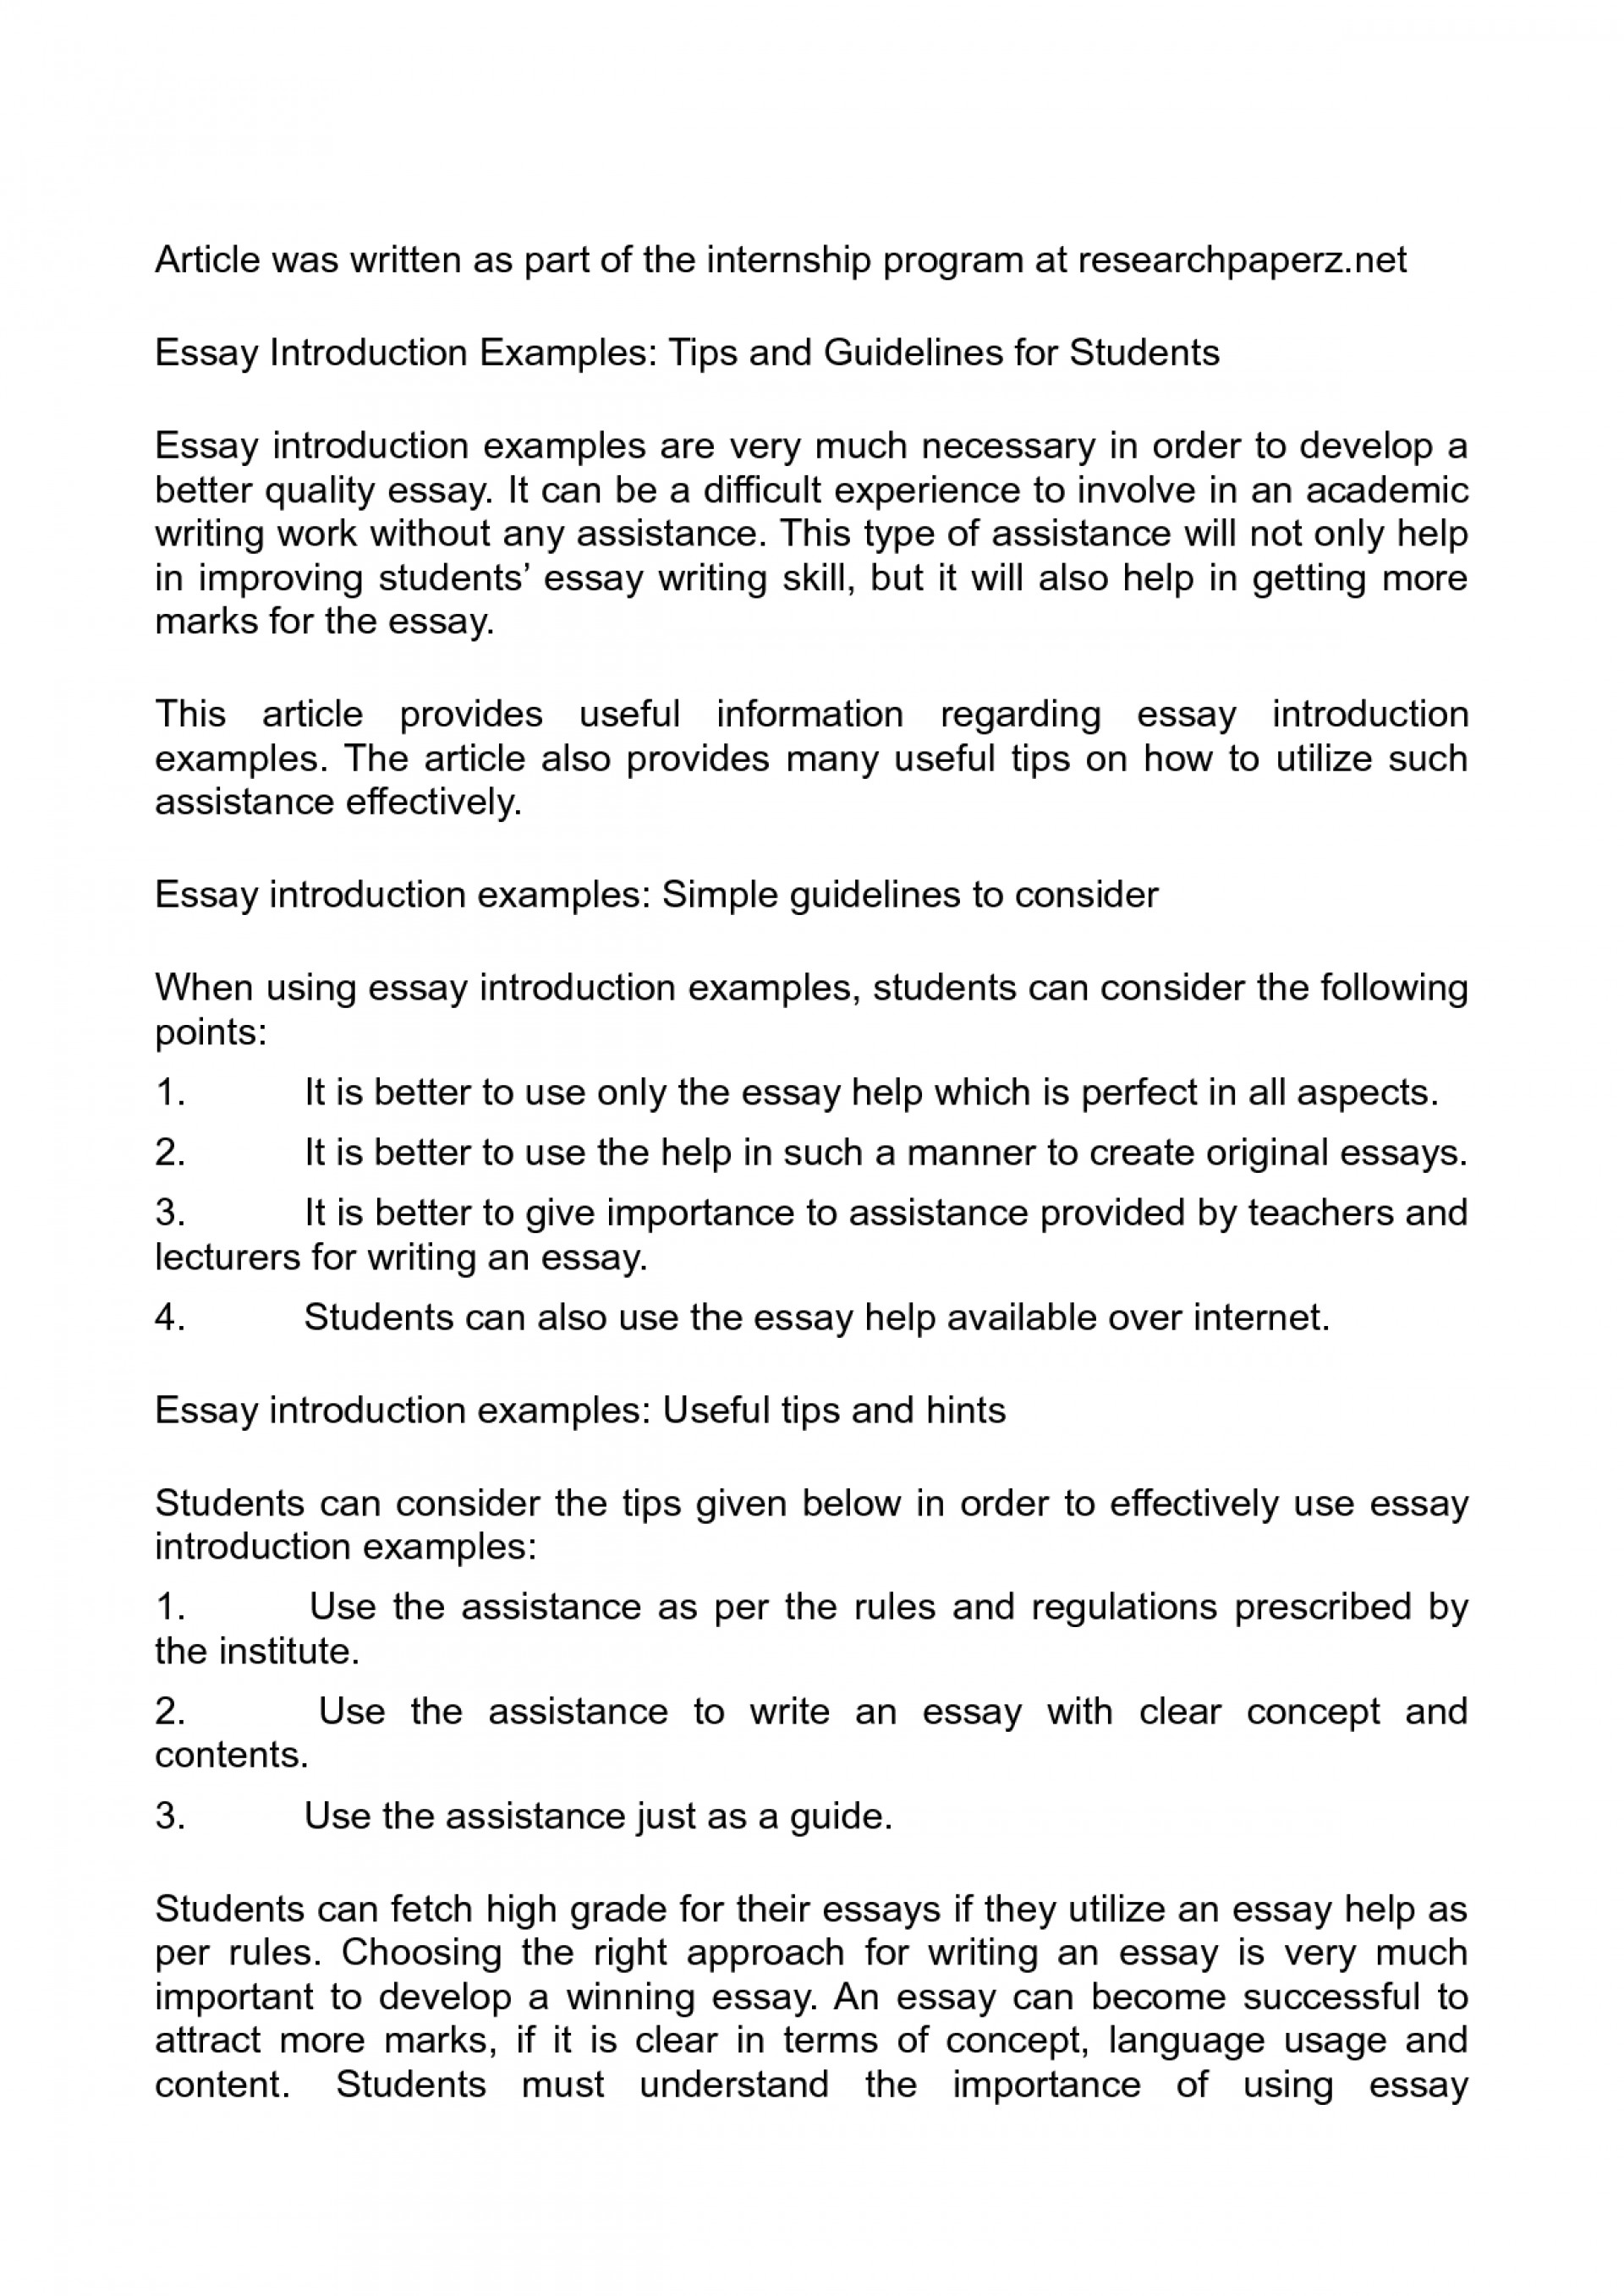 007 Essay Example Write An Academic Introduction Awful Writing Structure Skills Pdf 1920